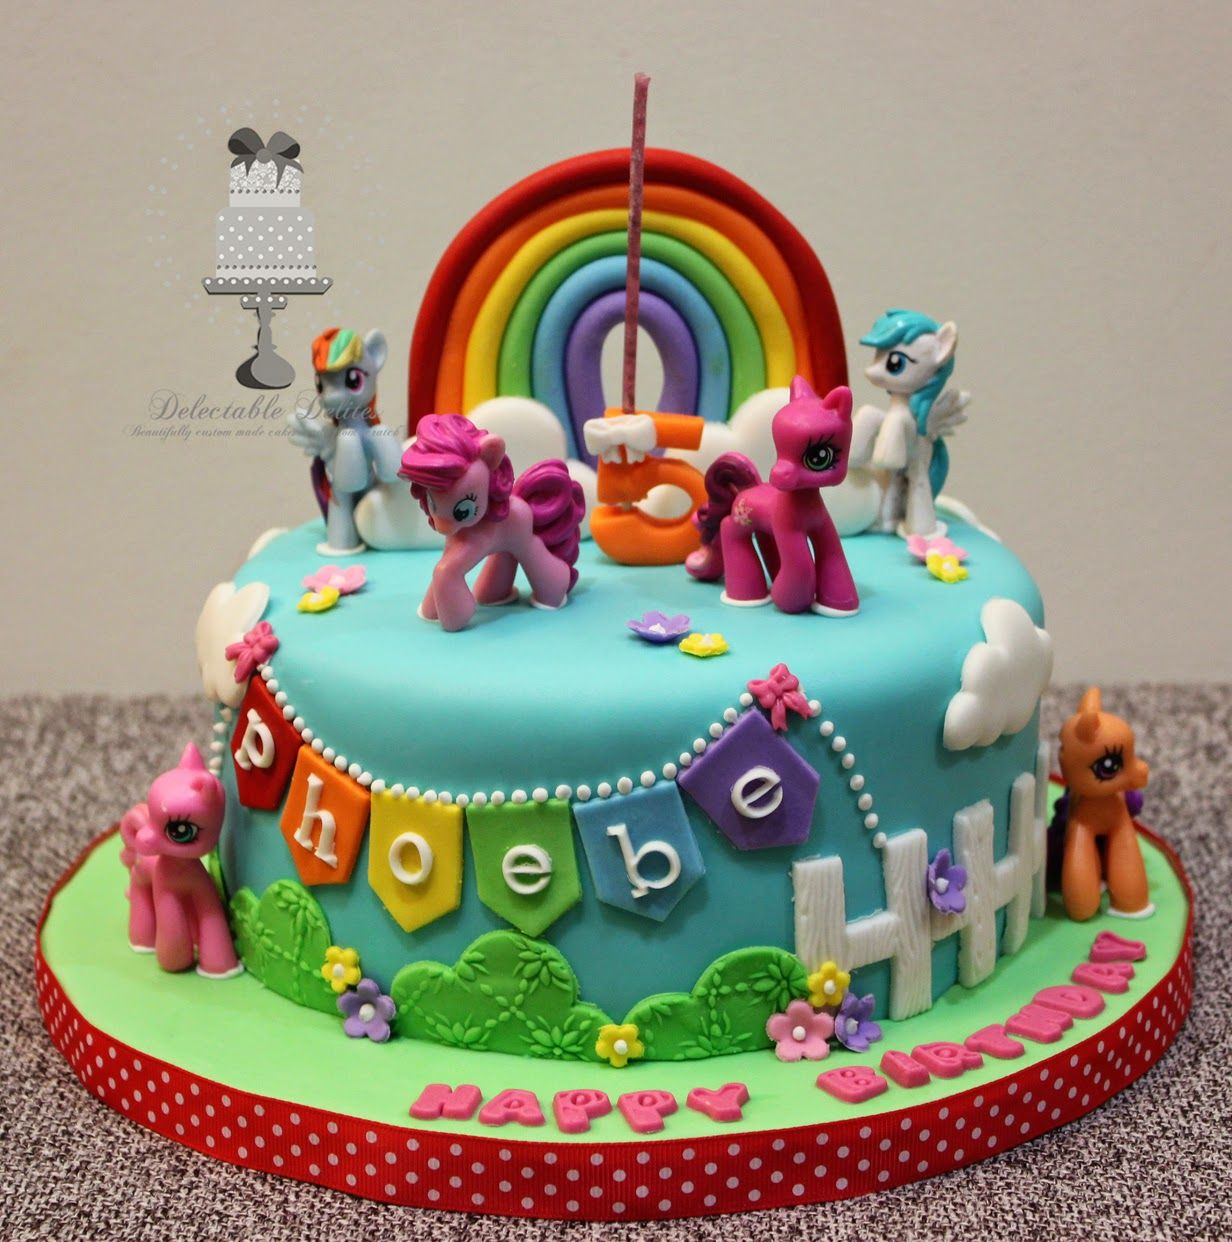 Delectable Delites My Little Pony Cake For Phoebe S 5th Birthday